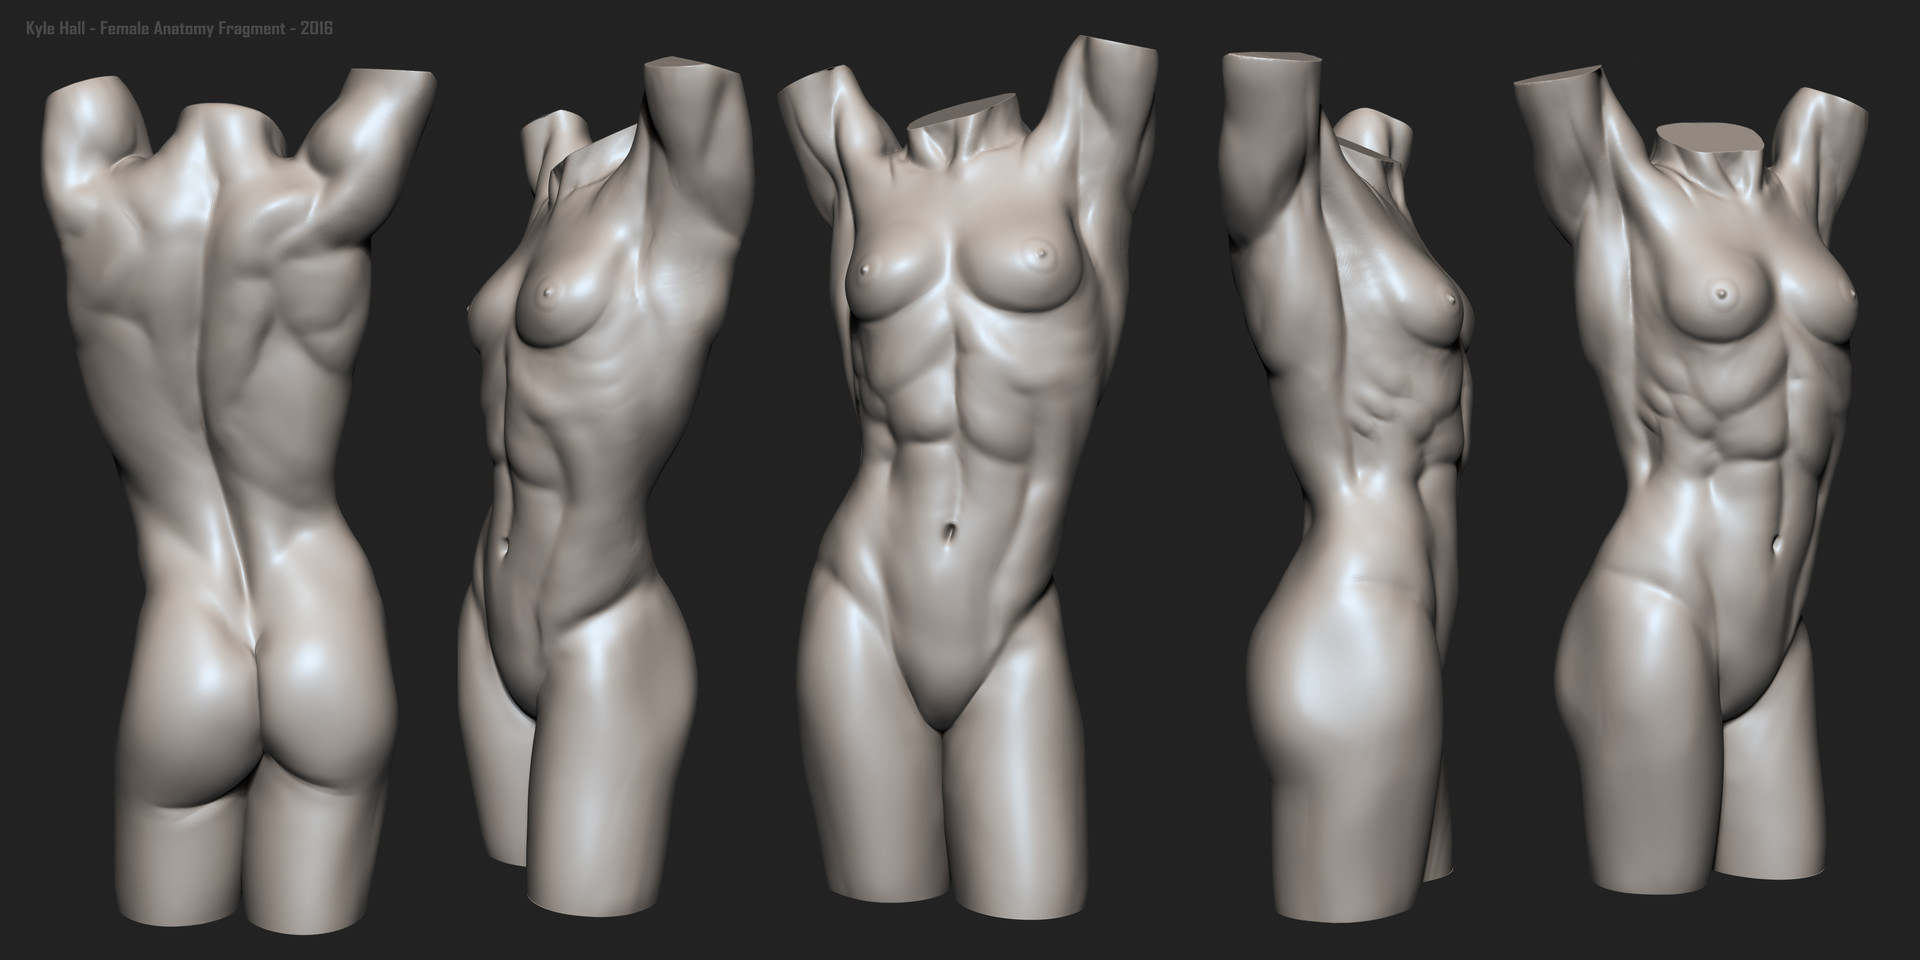 Kyle Hall - Female Torso Anatomy Fragment